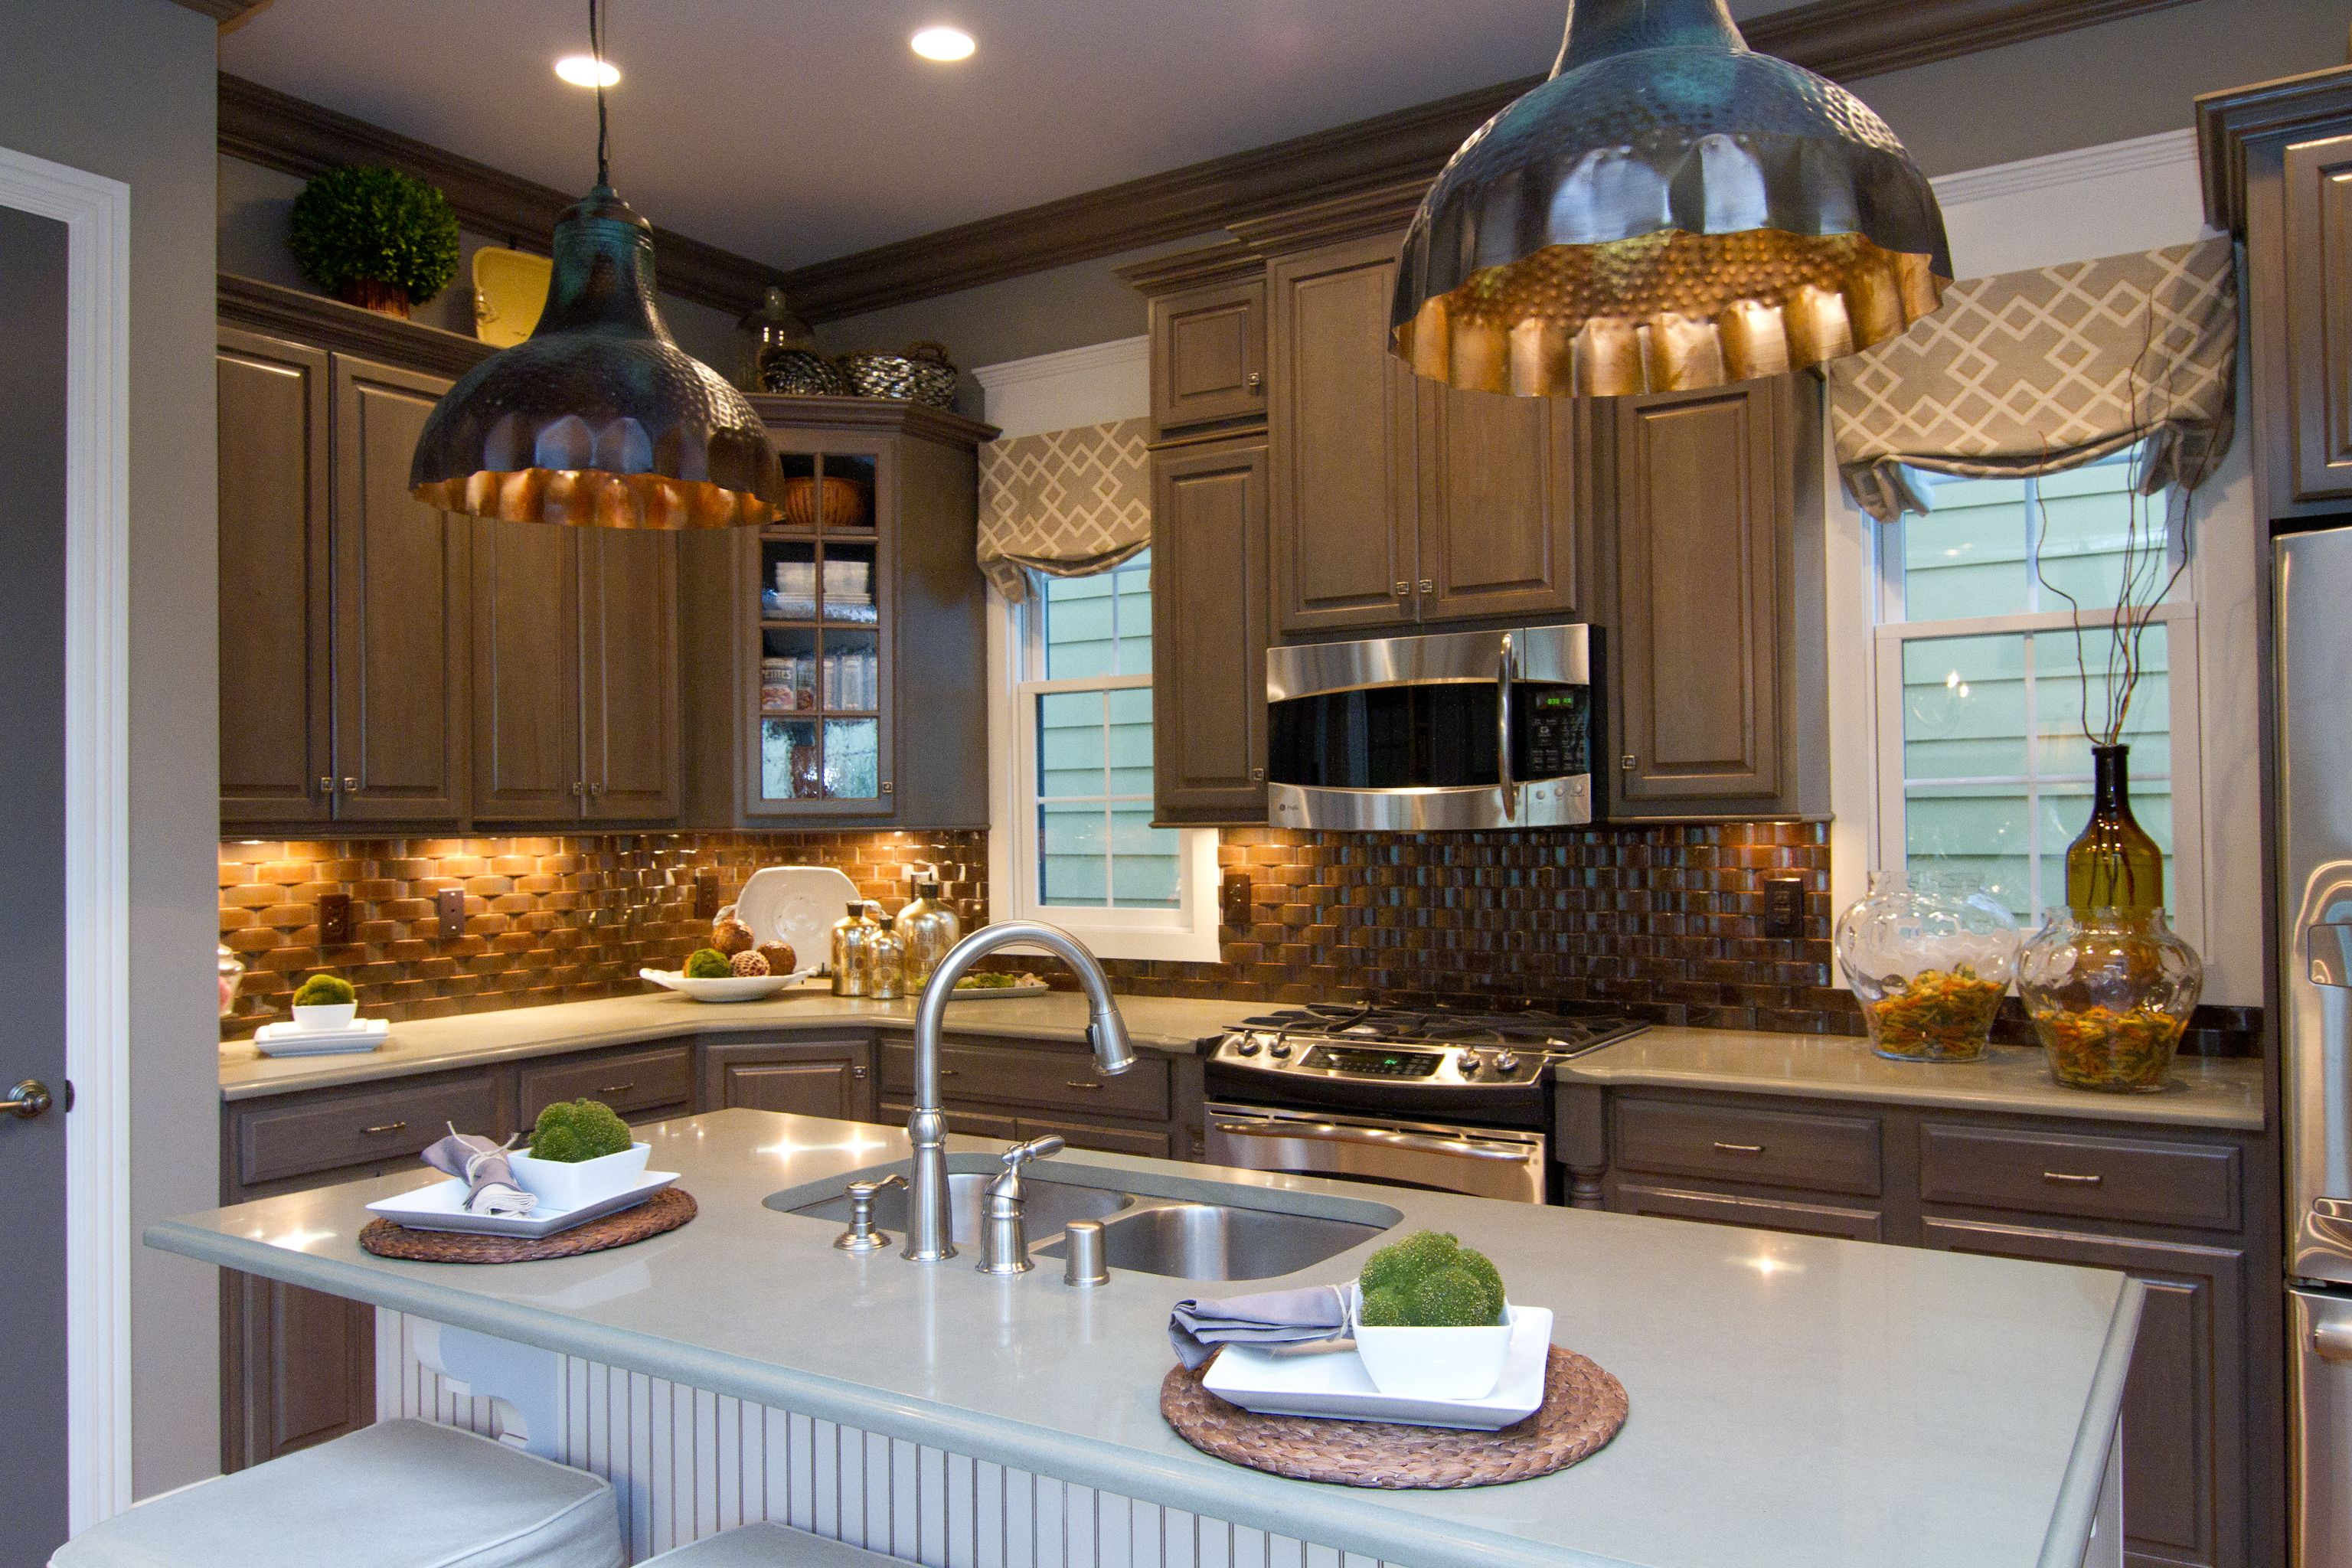 pin by ll a interior design on kitchen design kitchen design kitchen accessories kitchen on kitchen interior accessories id=87733